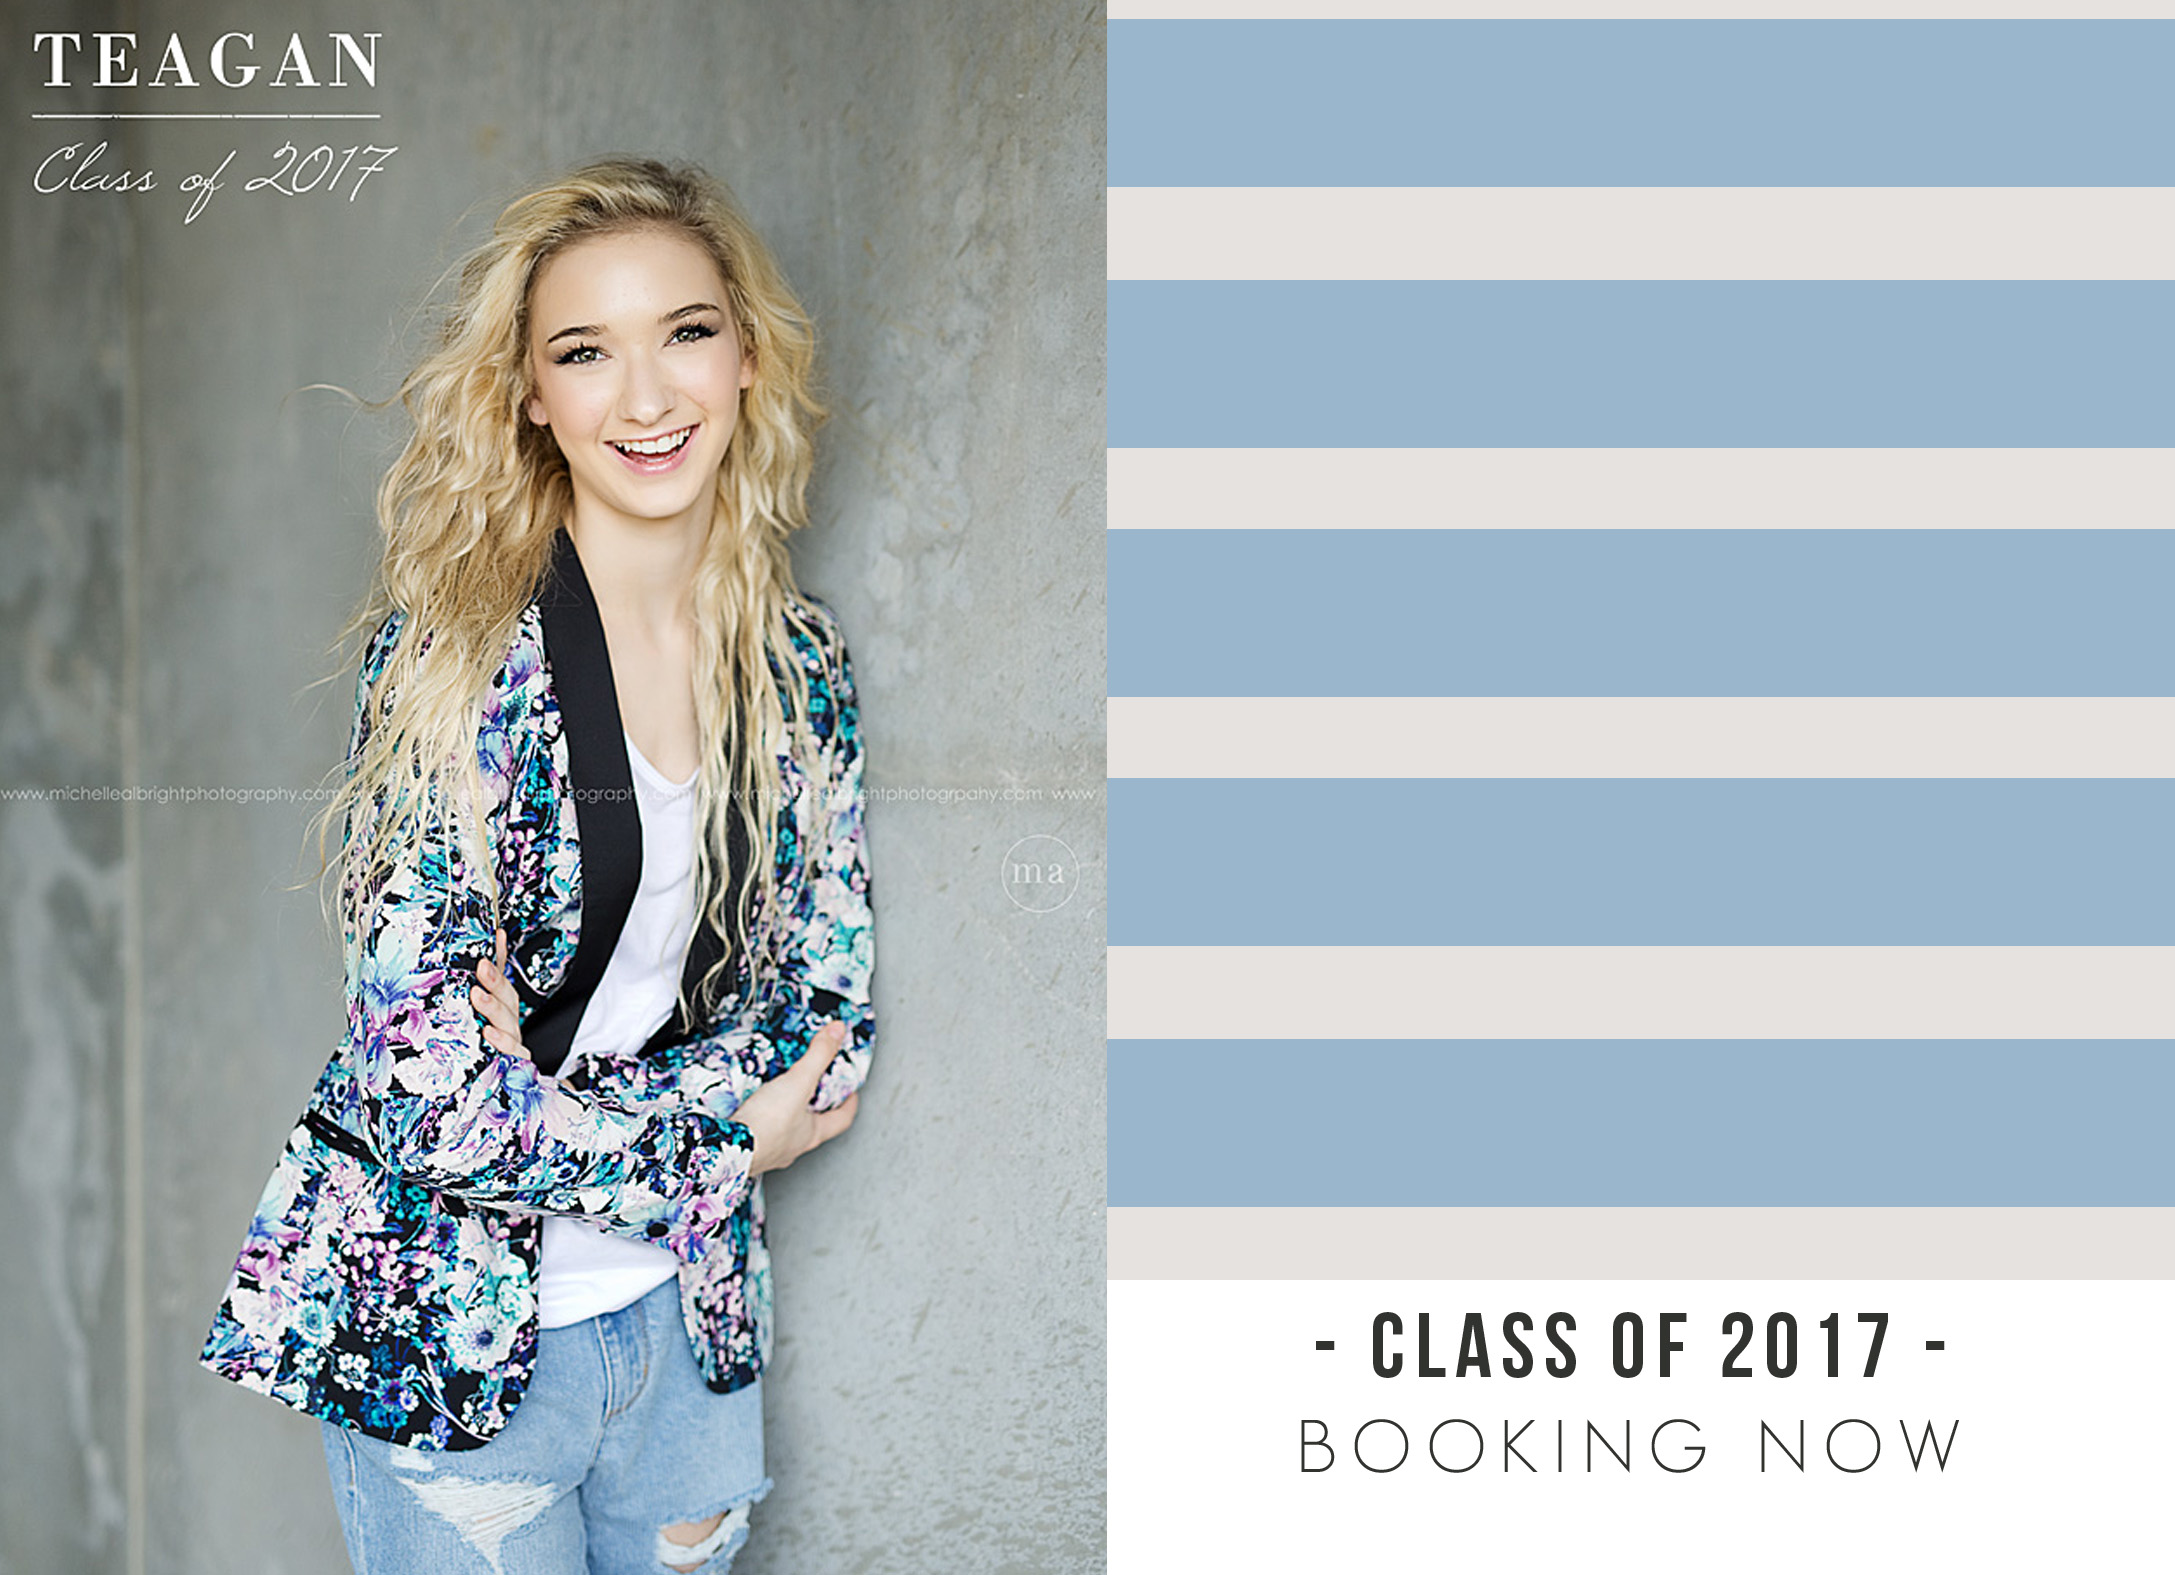 Fill out the contact form to schedule your session today